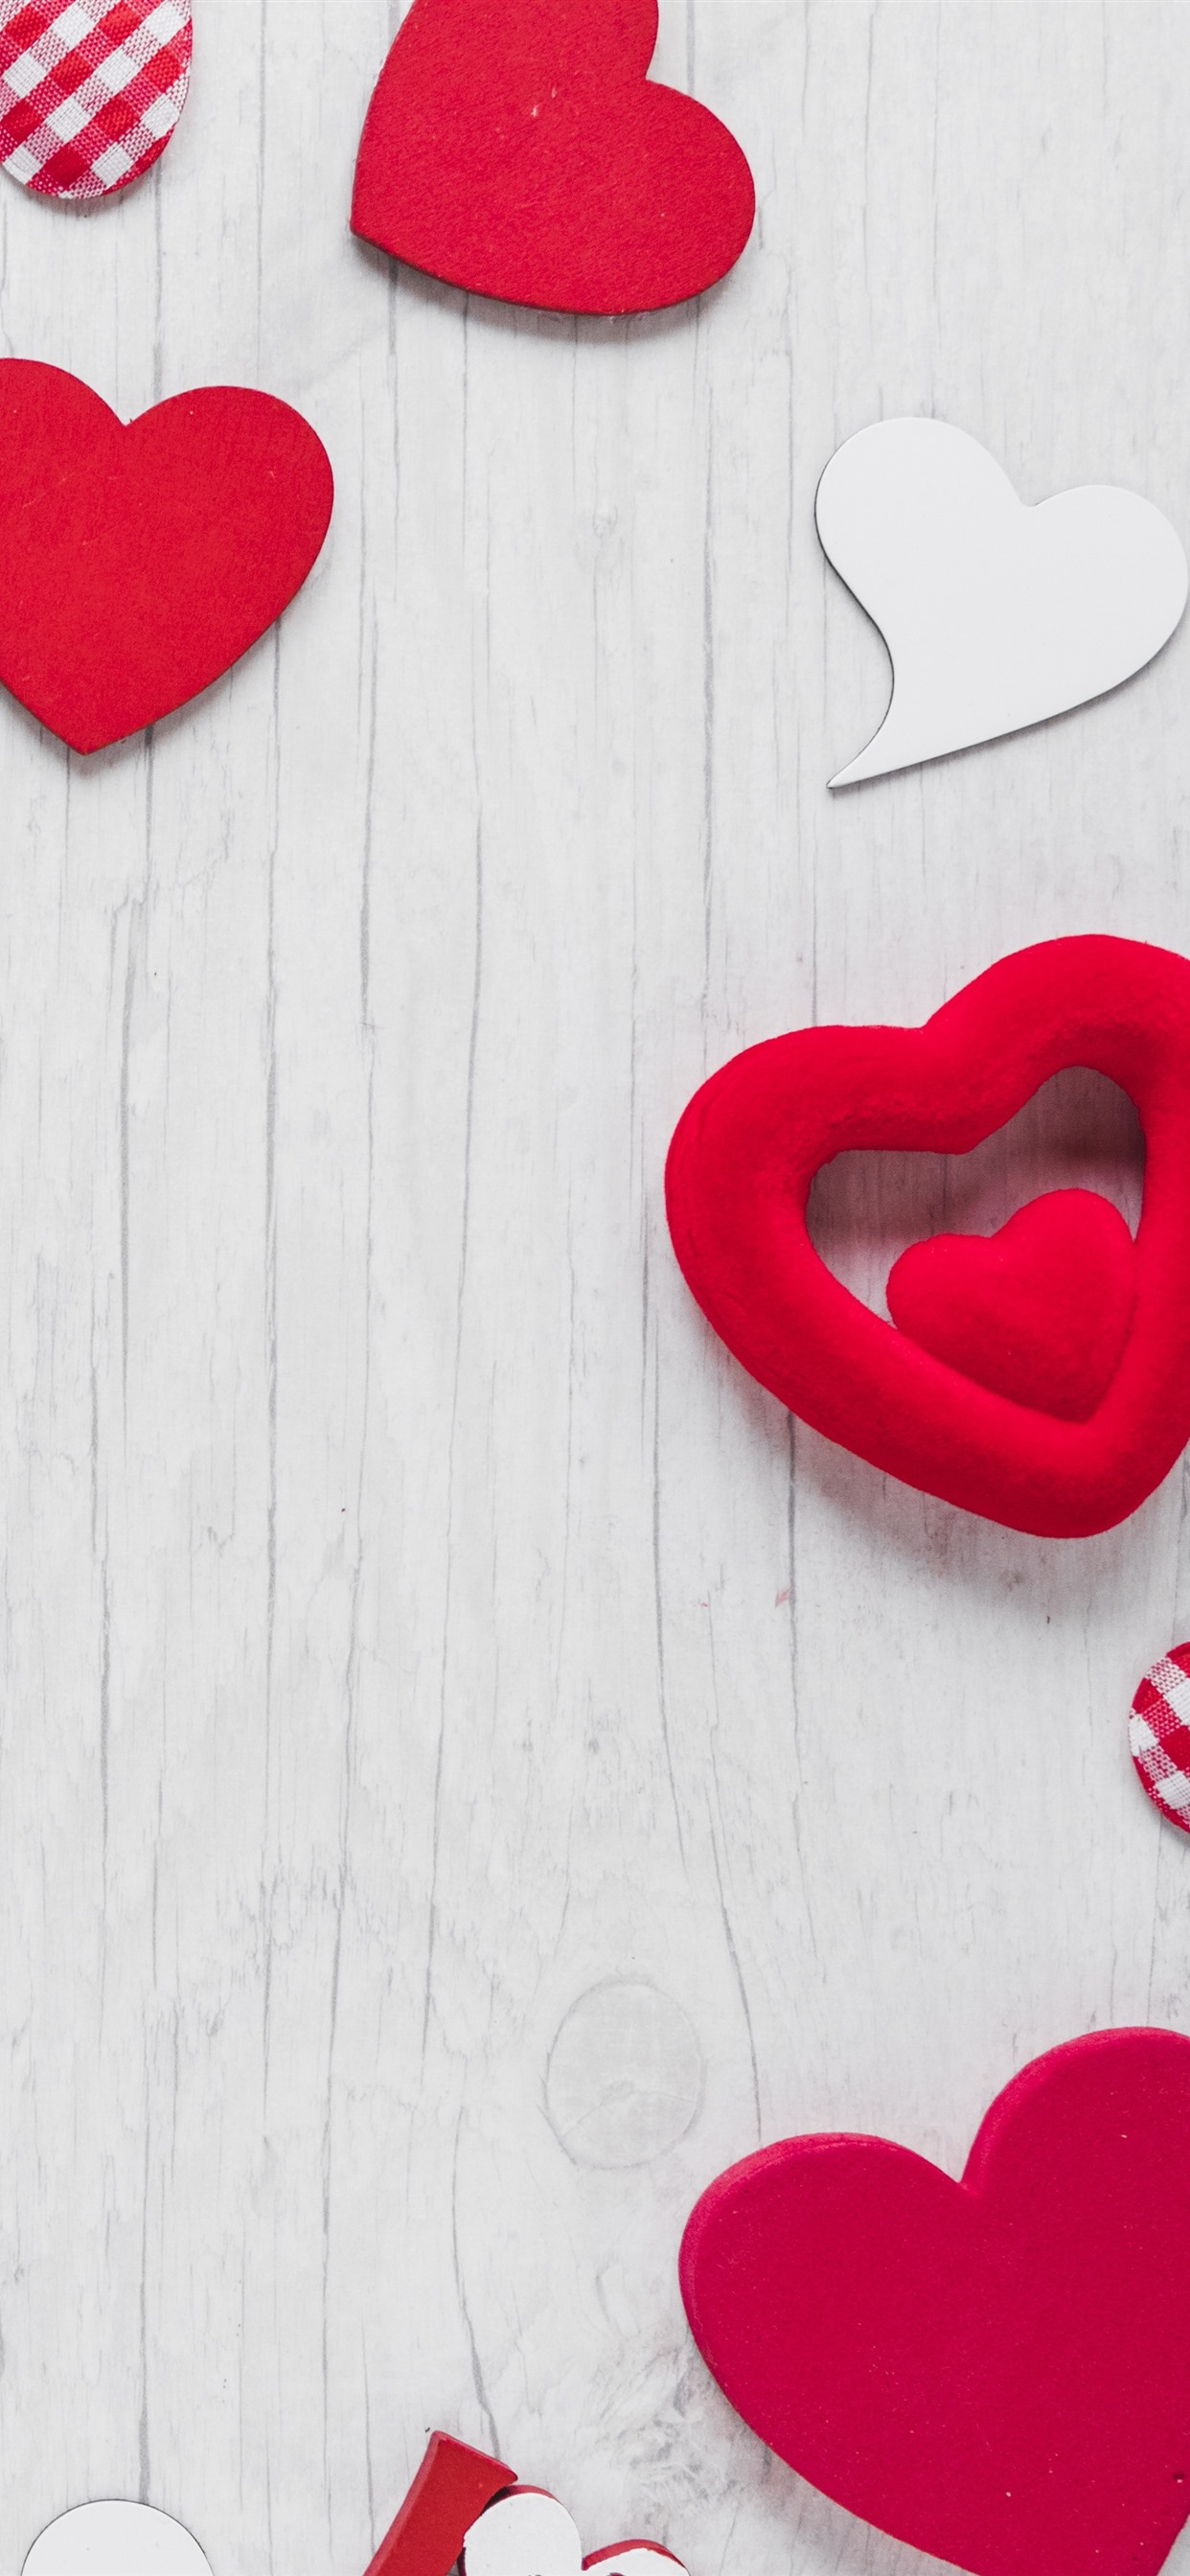 Iphone Wallpaper Some Love Hearts Gift Romantic Love Iphone 11 Pro Max 3201223 Hd Wallpaper Backgrounds Download